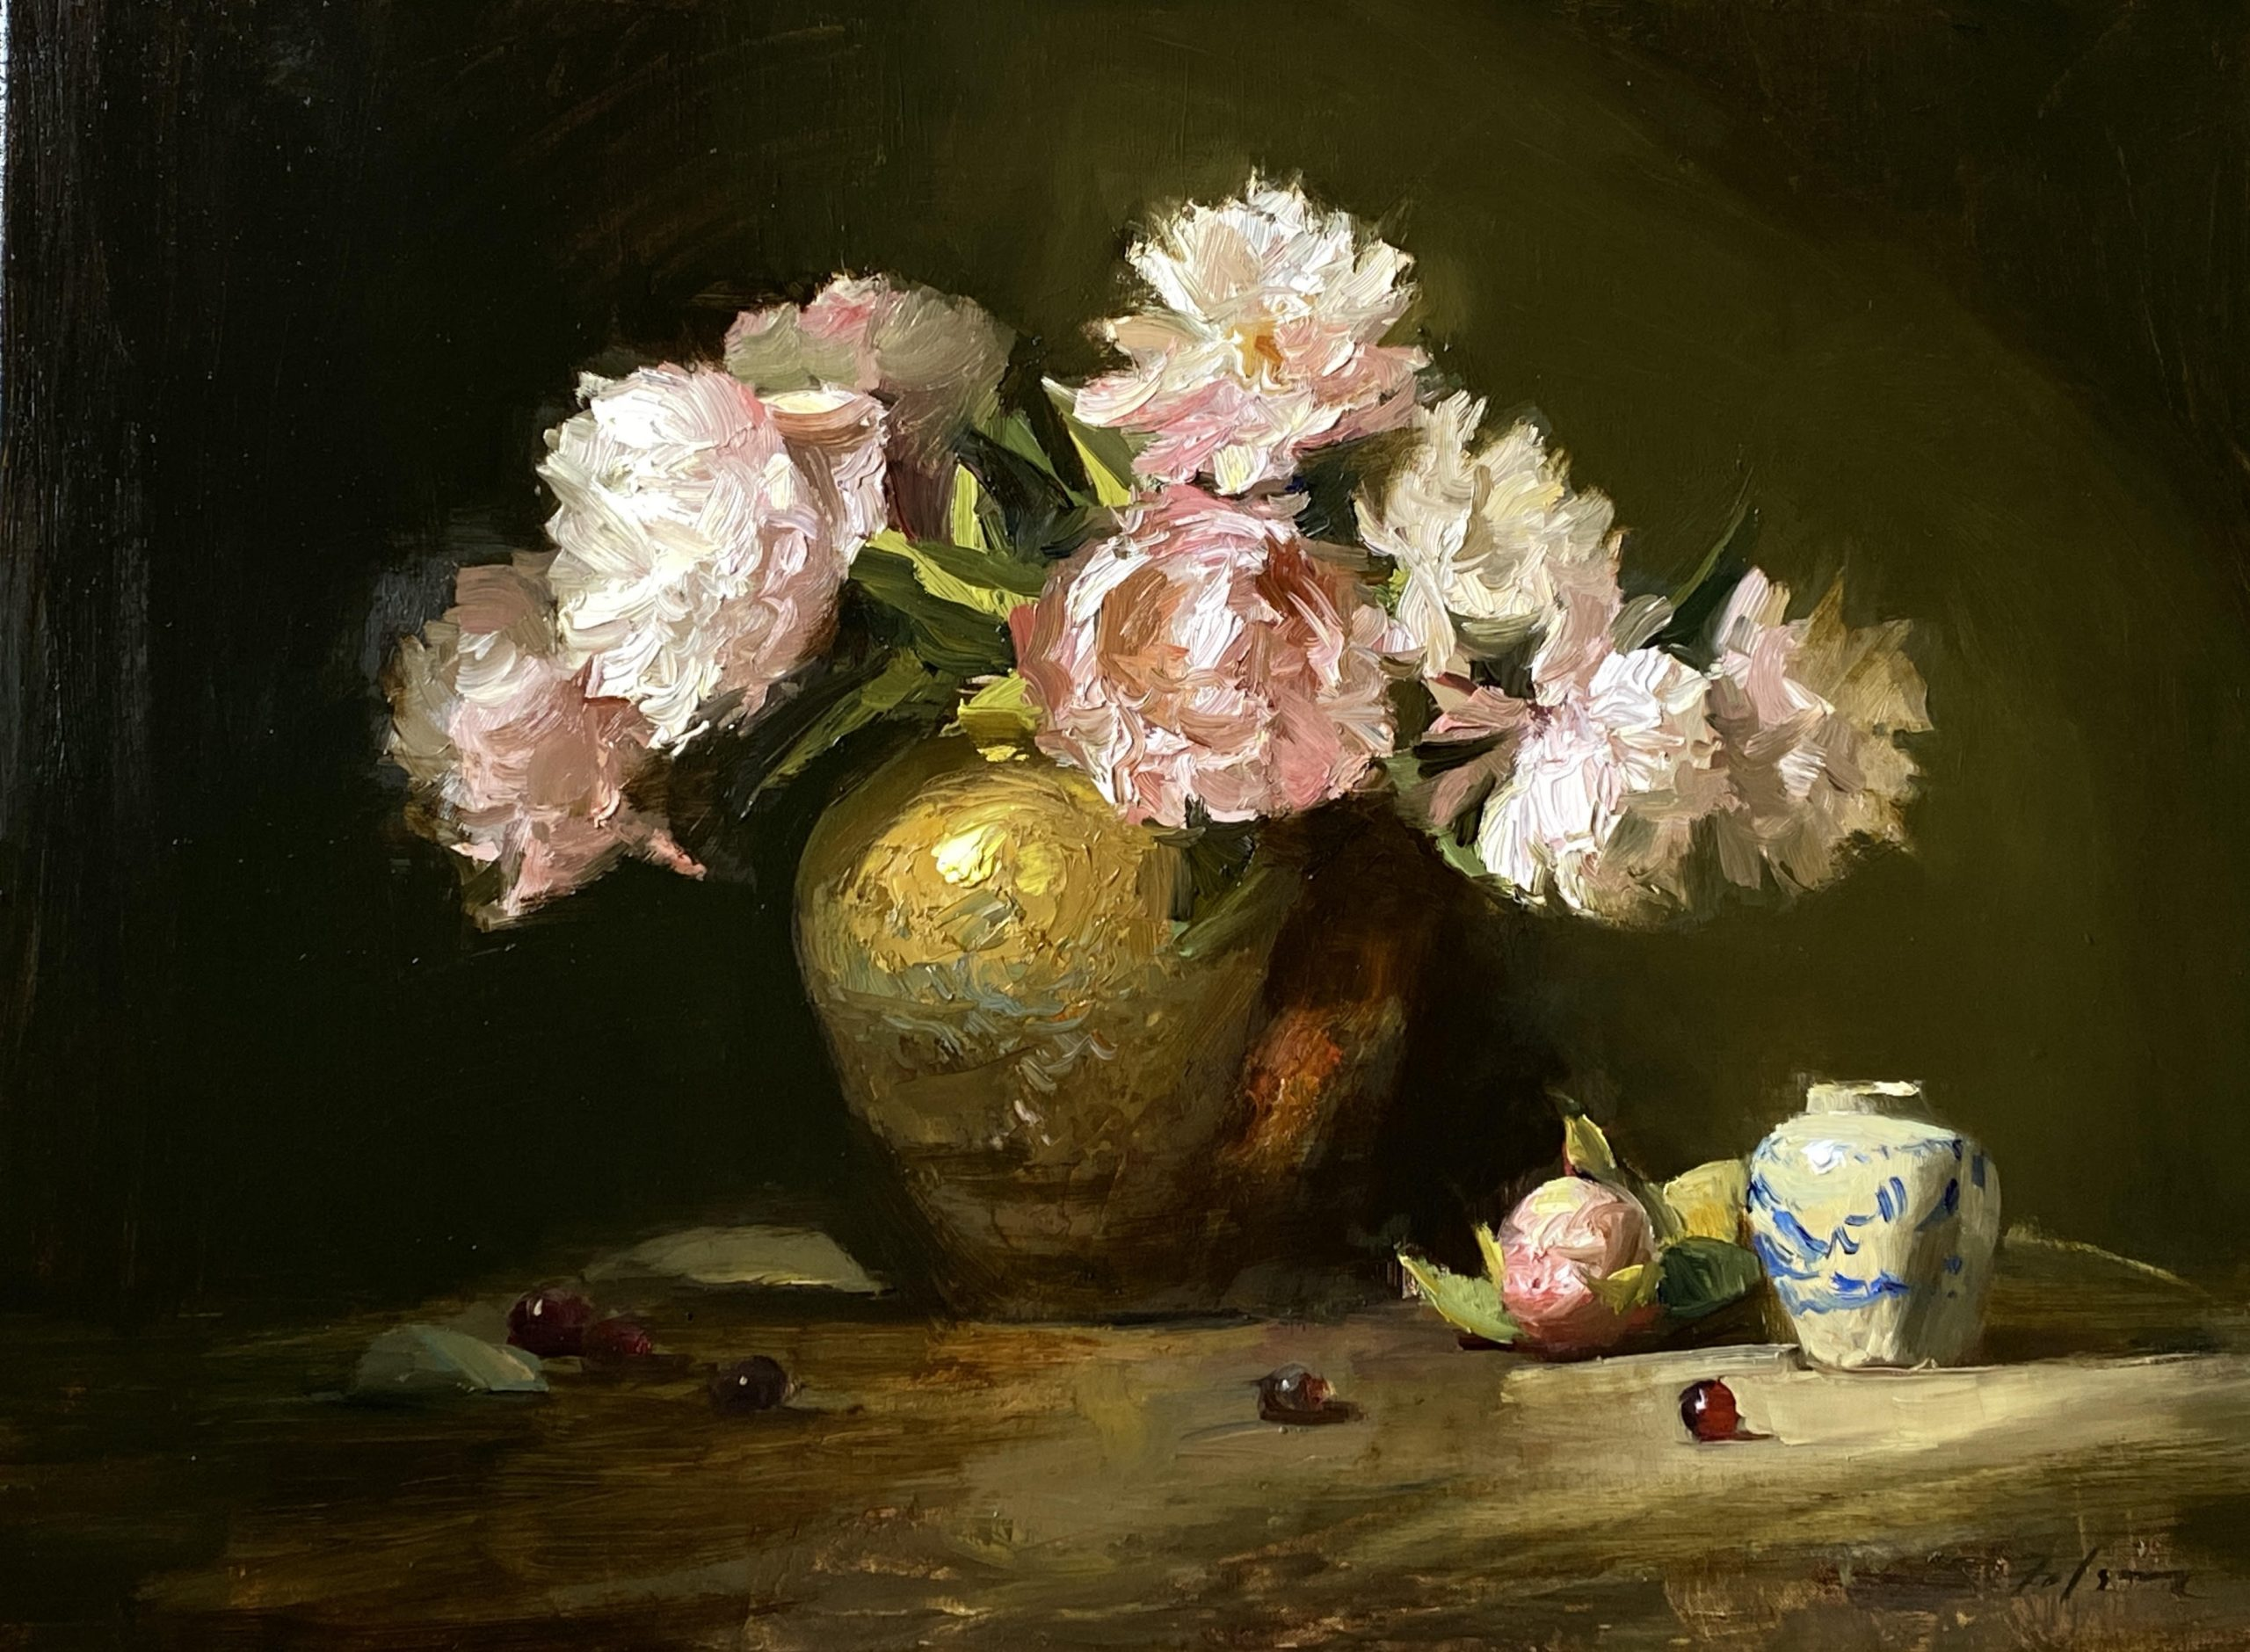 Here's why I love painting peonies. New peony art fresh off the easel!